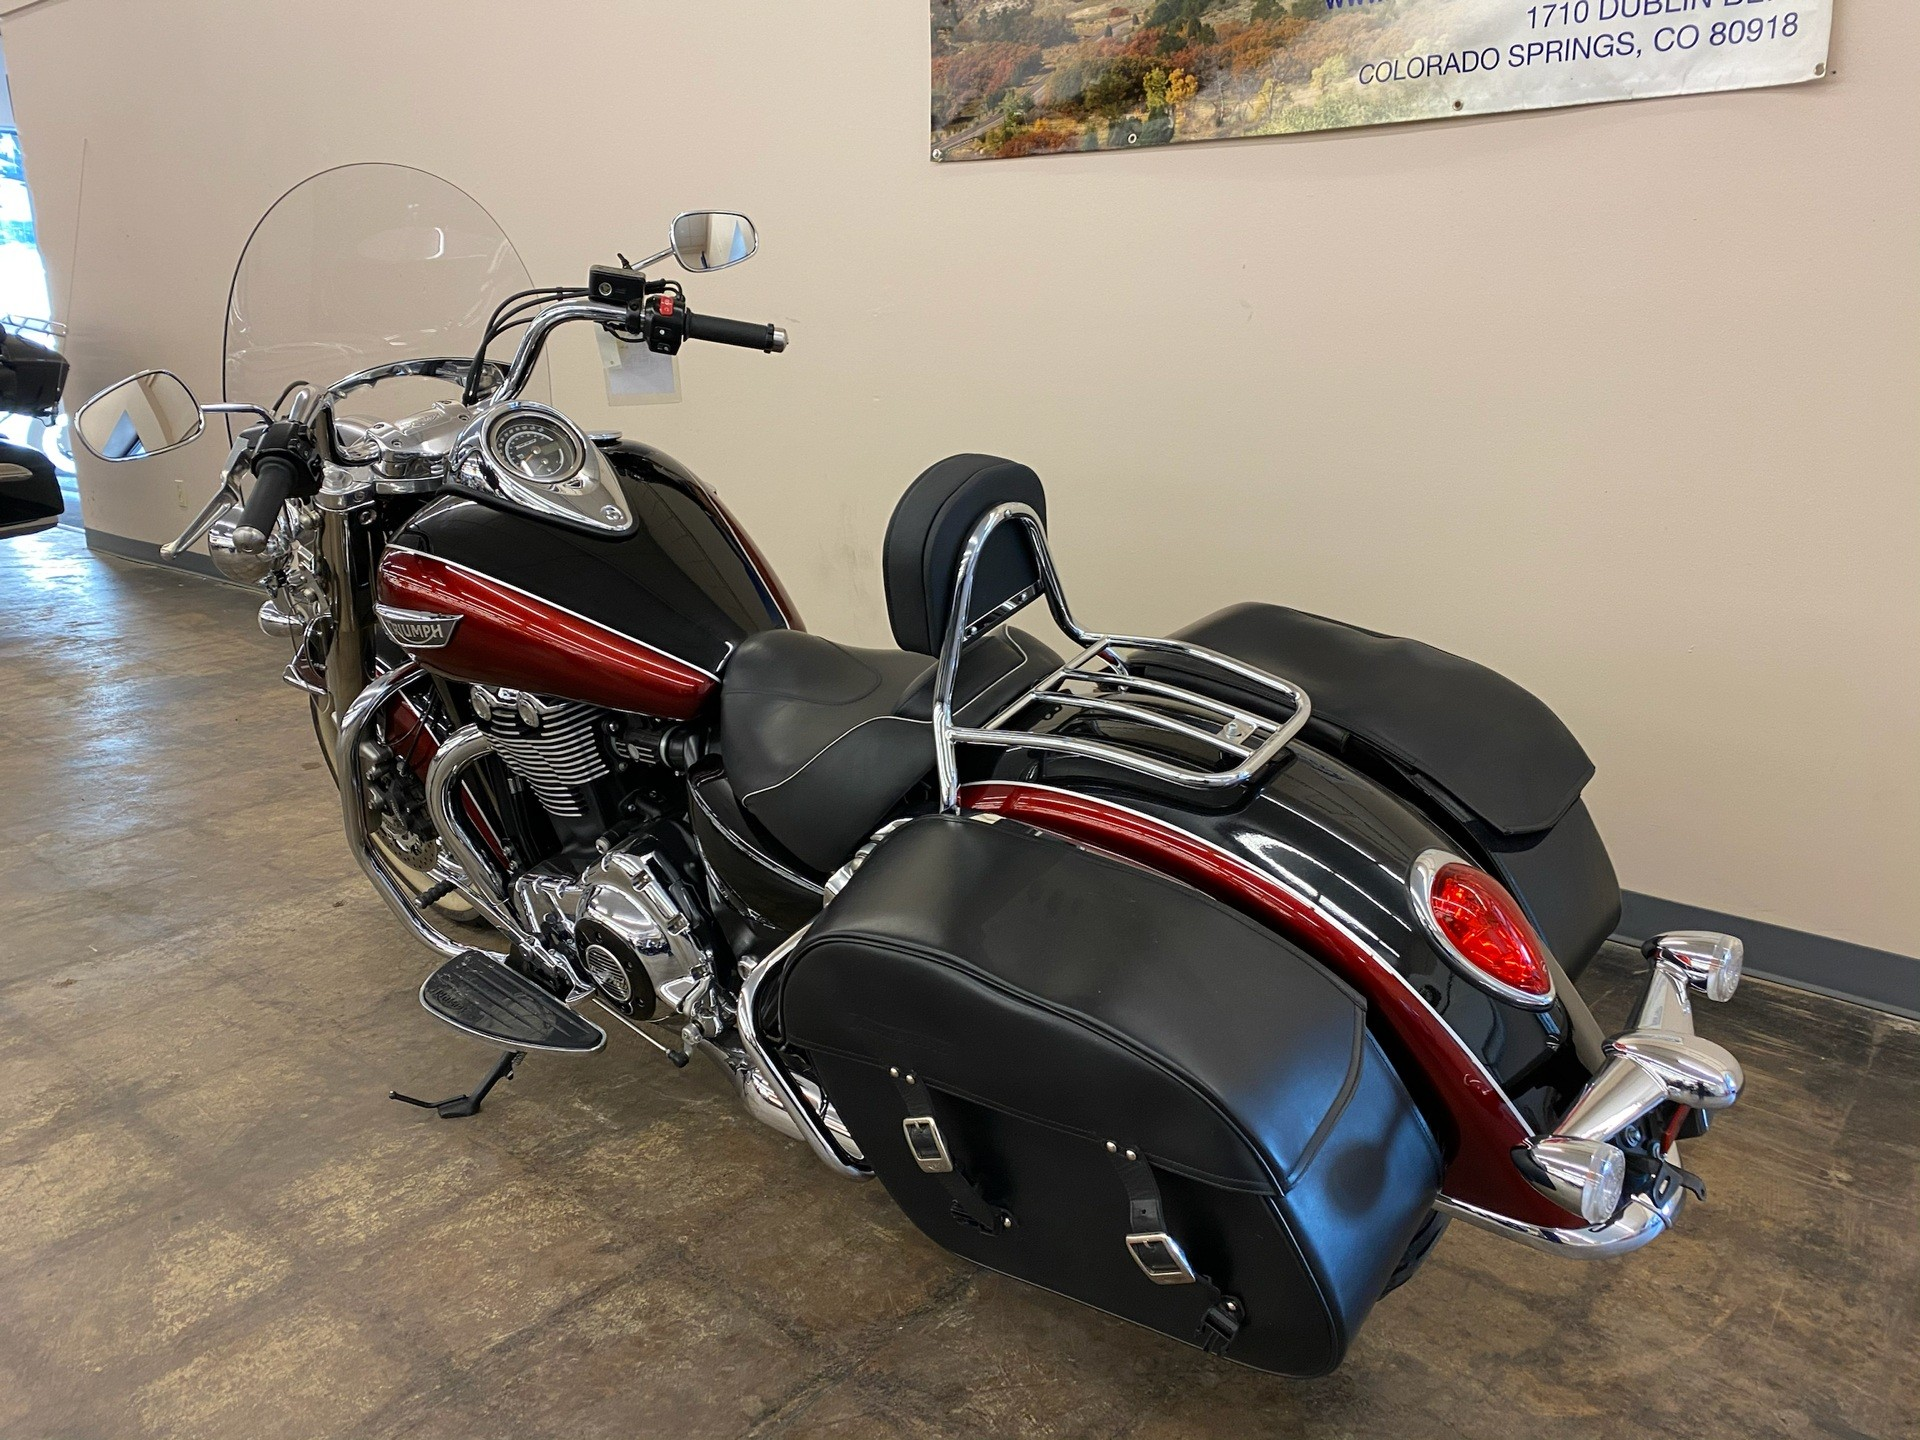 2014 Triumph Thunderbird LT in Colorado Springs, Colorado - Photo 4